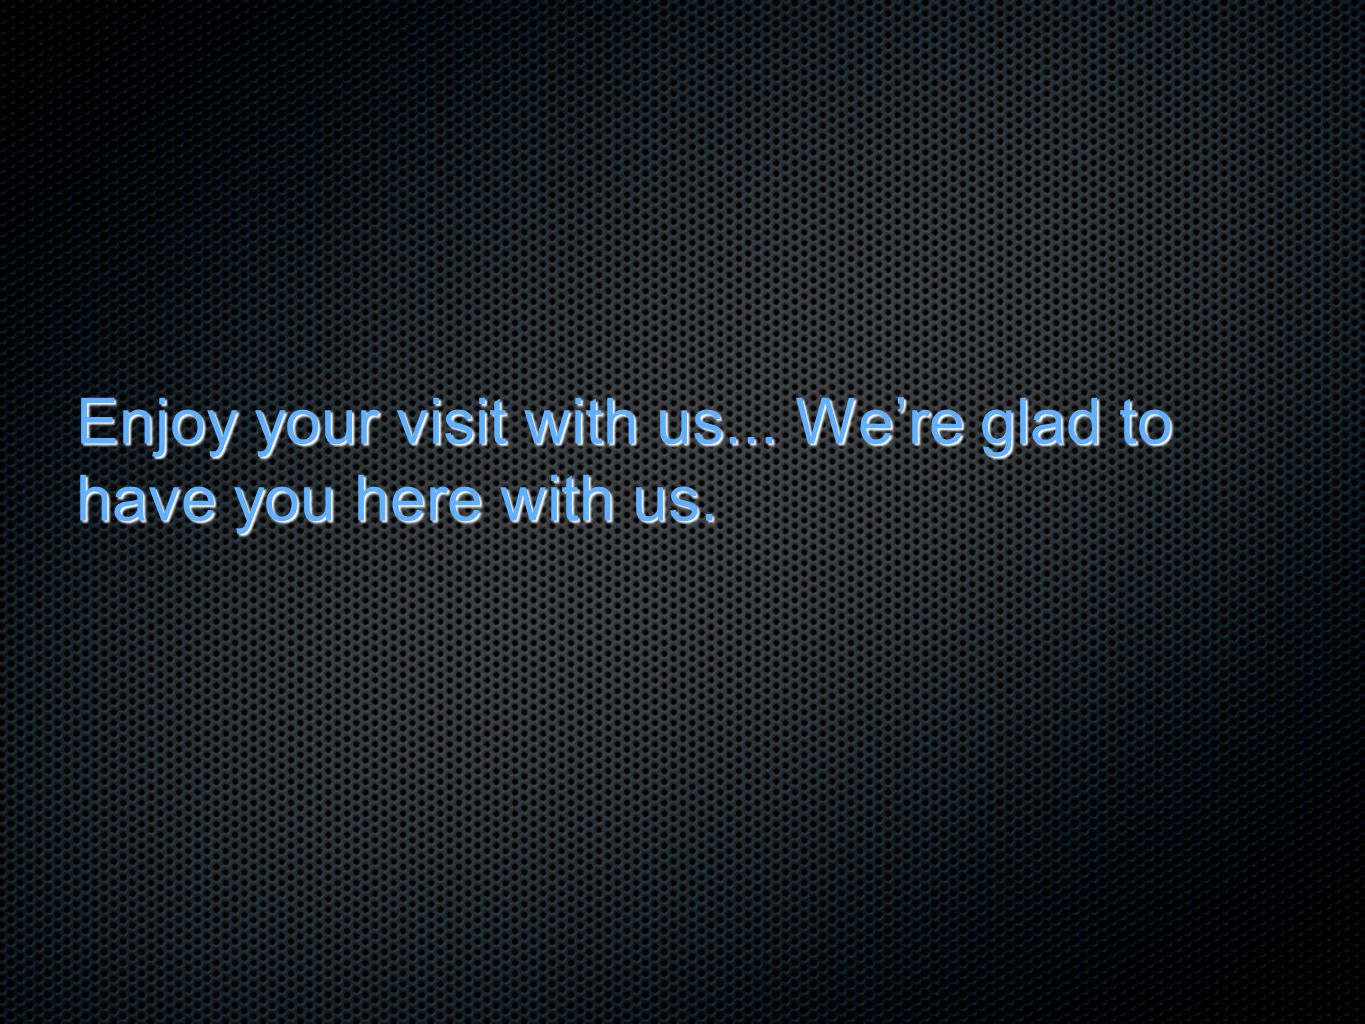 Enjoy your visit with us... We're glad to have you here with us.